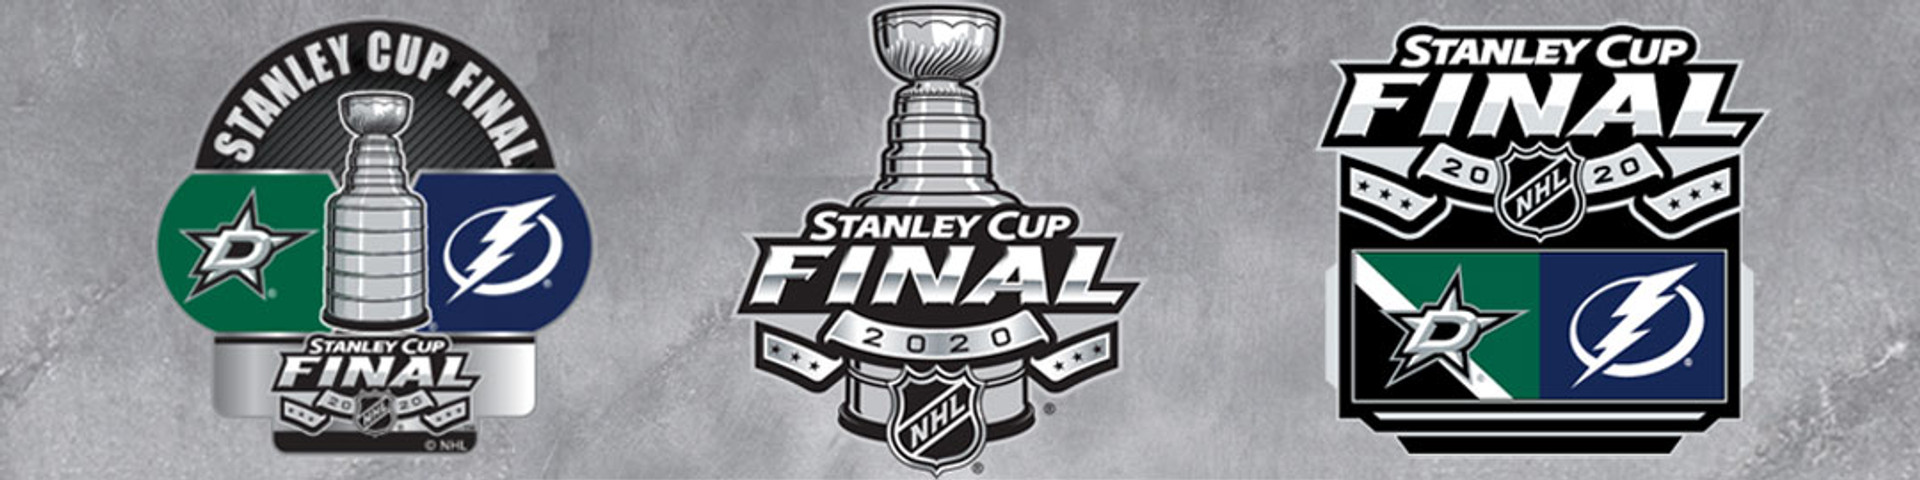 2020 stanley cup pins